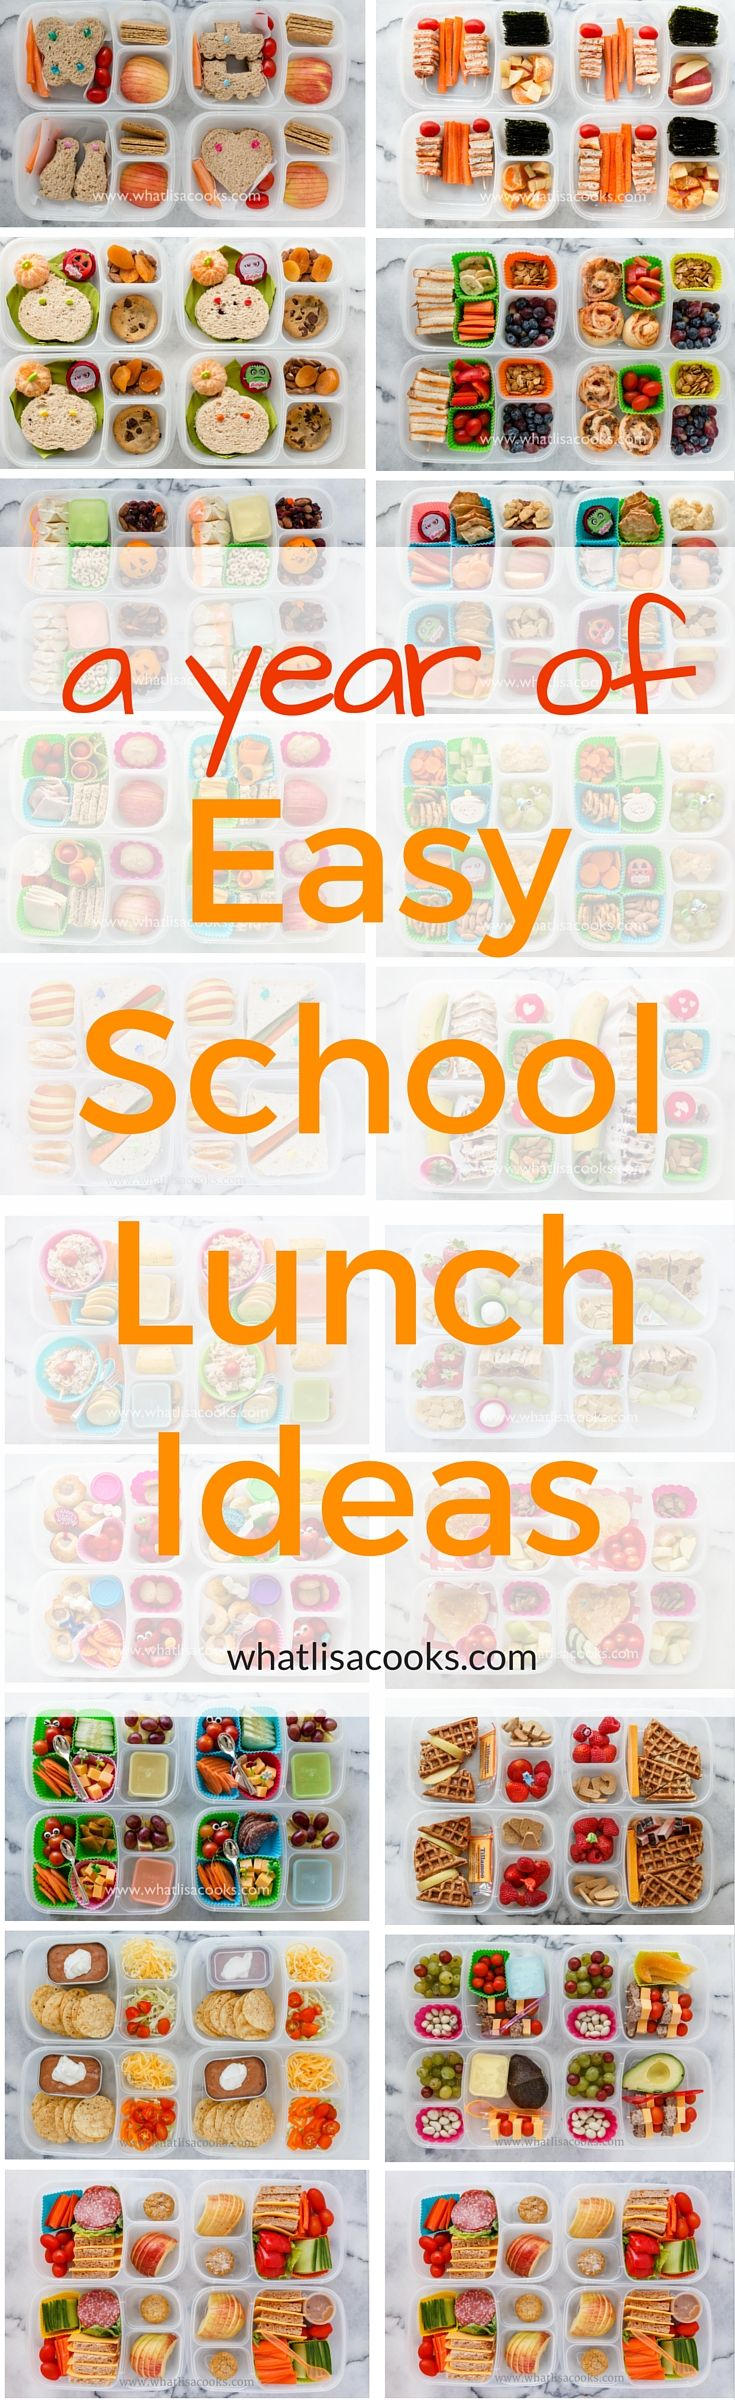 A whole year of easy school lunch packing ideas from WhatLisaCooks.com. If you need ideas for what to pack for school lunch, look no further!